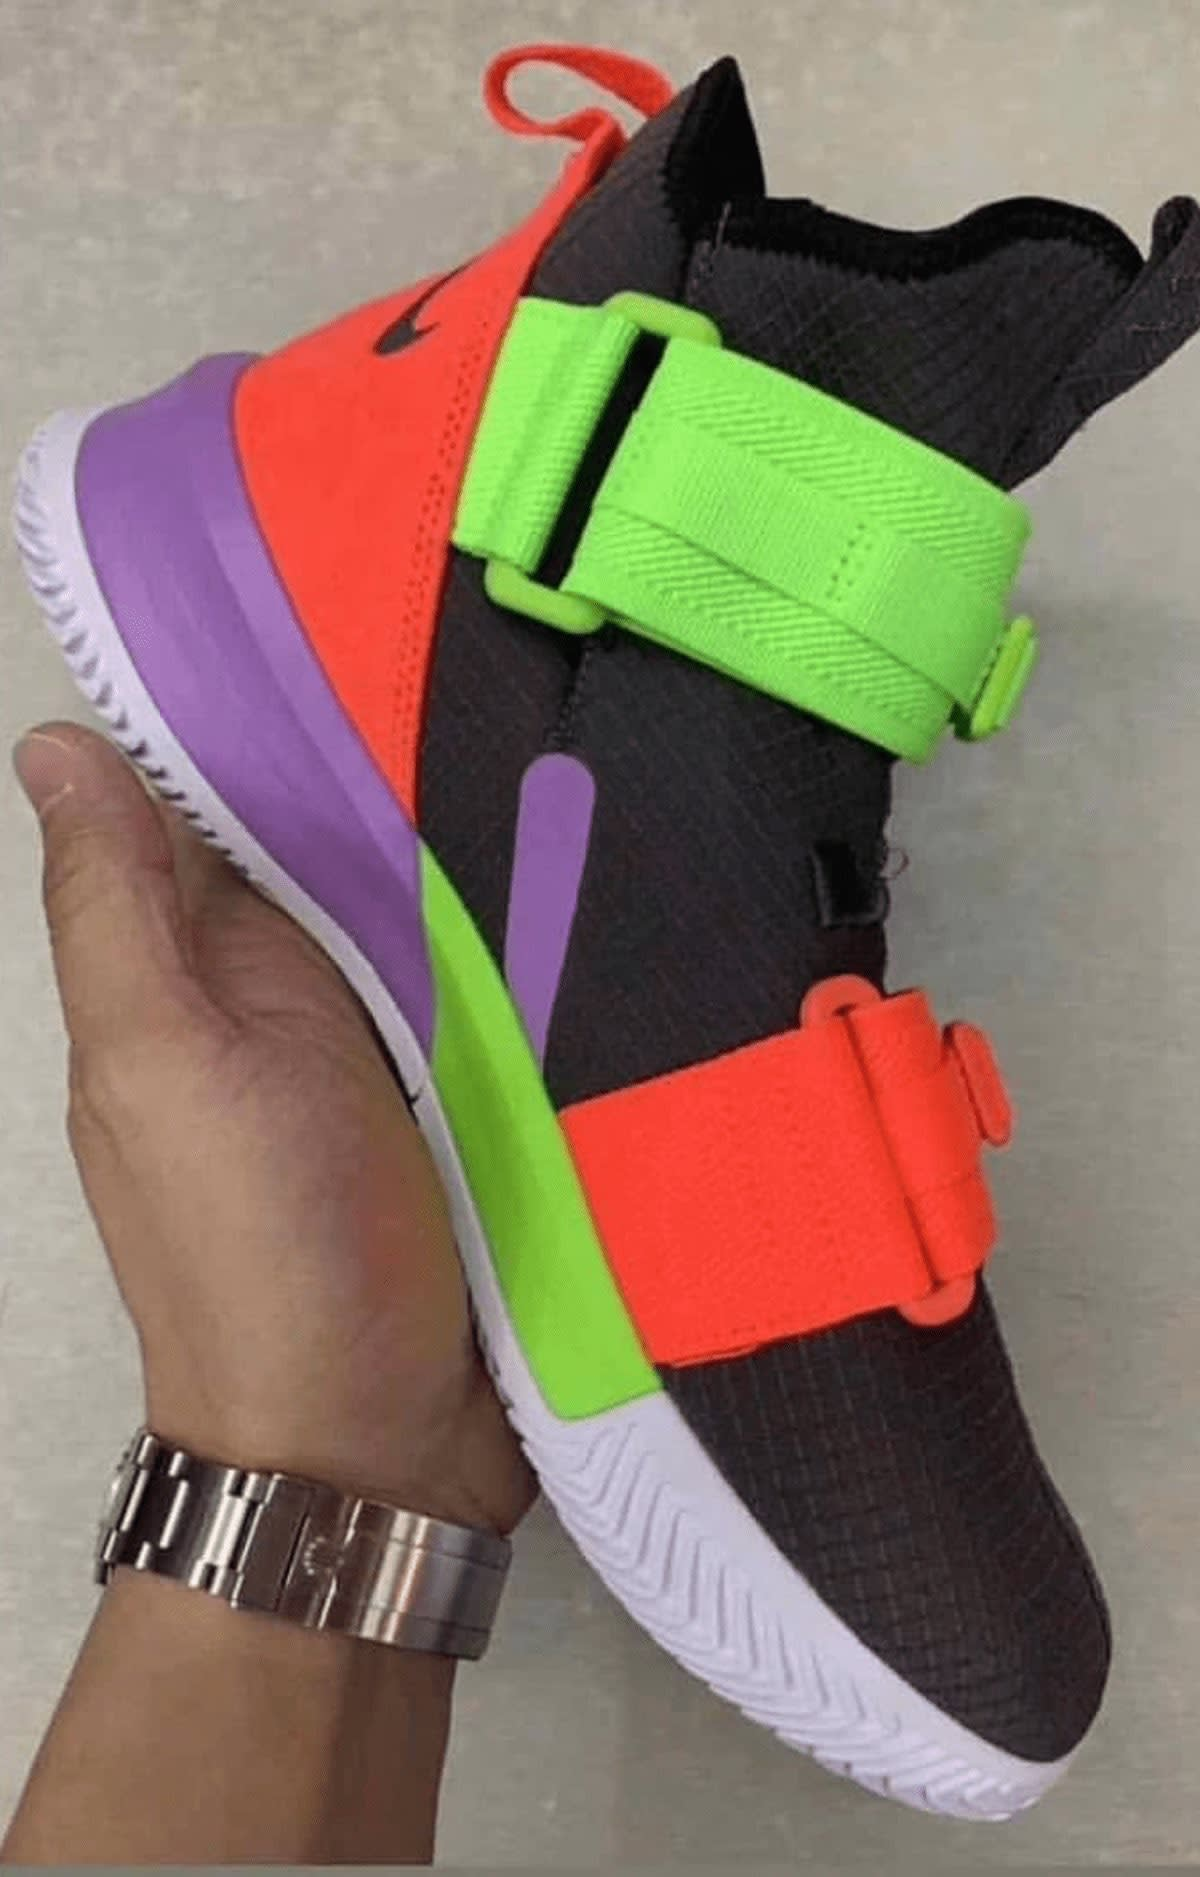 the latest 11898 53c14 Nike LeBron Soldier 13 'Thunder Grey' AR4228-002 Release ...